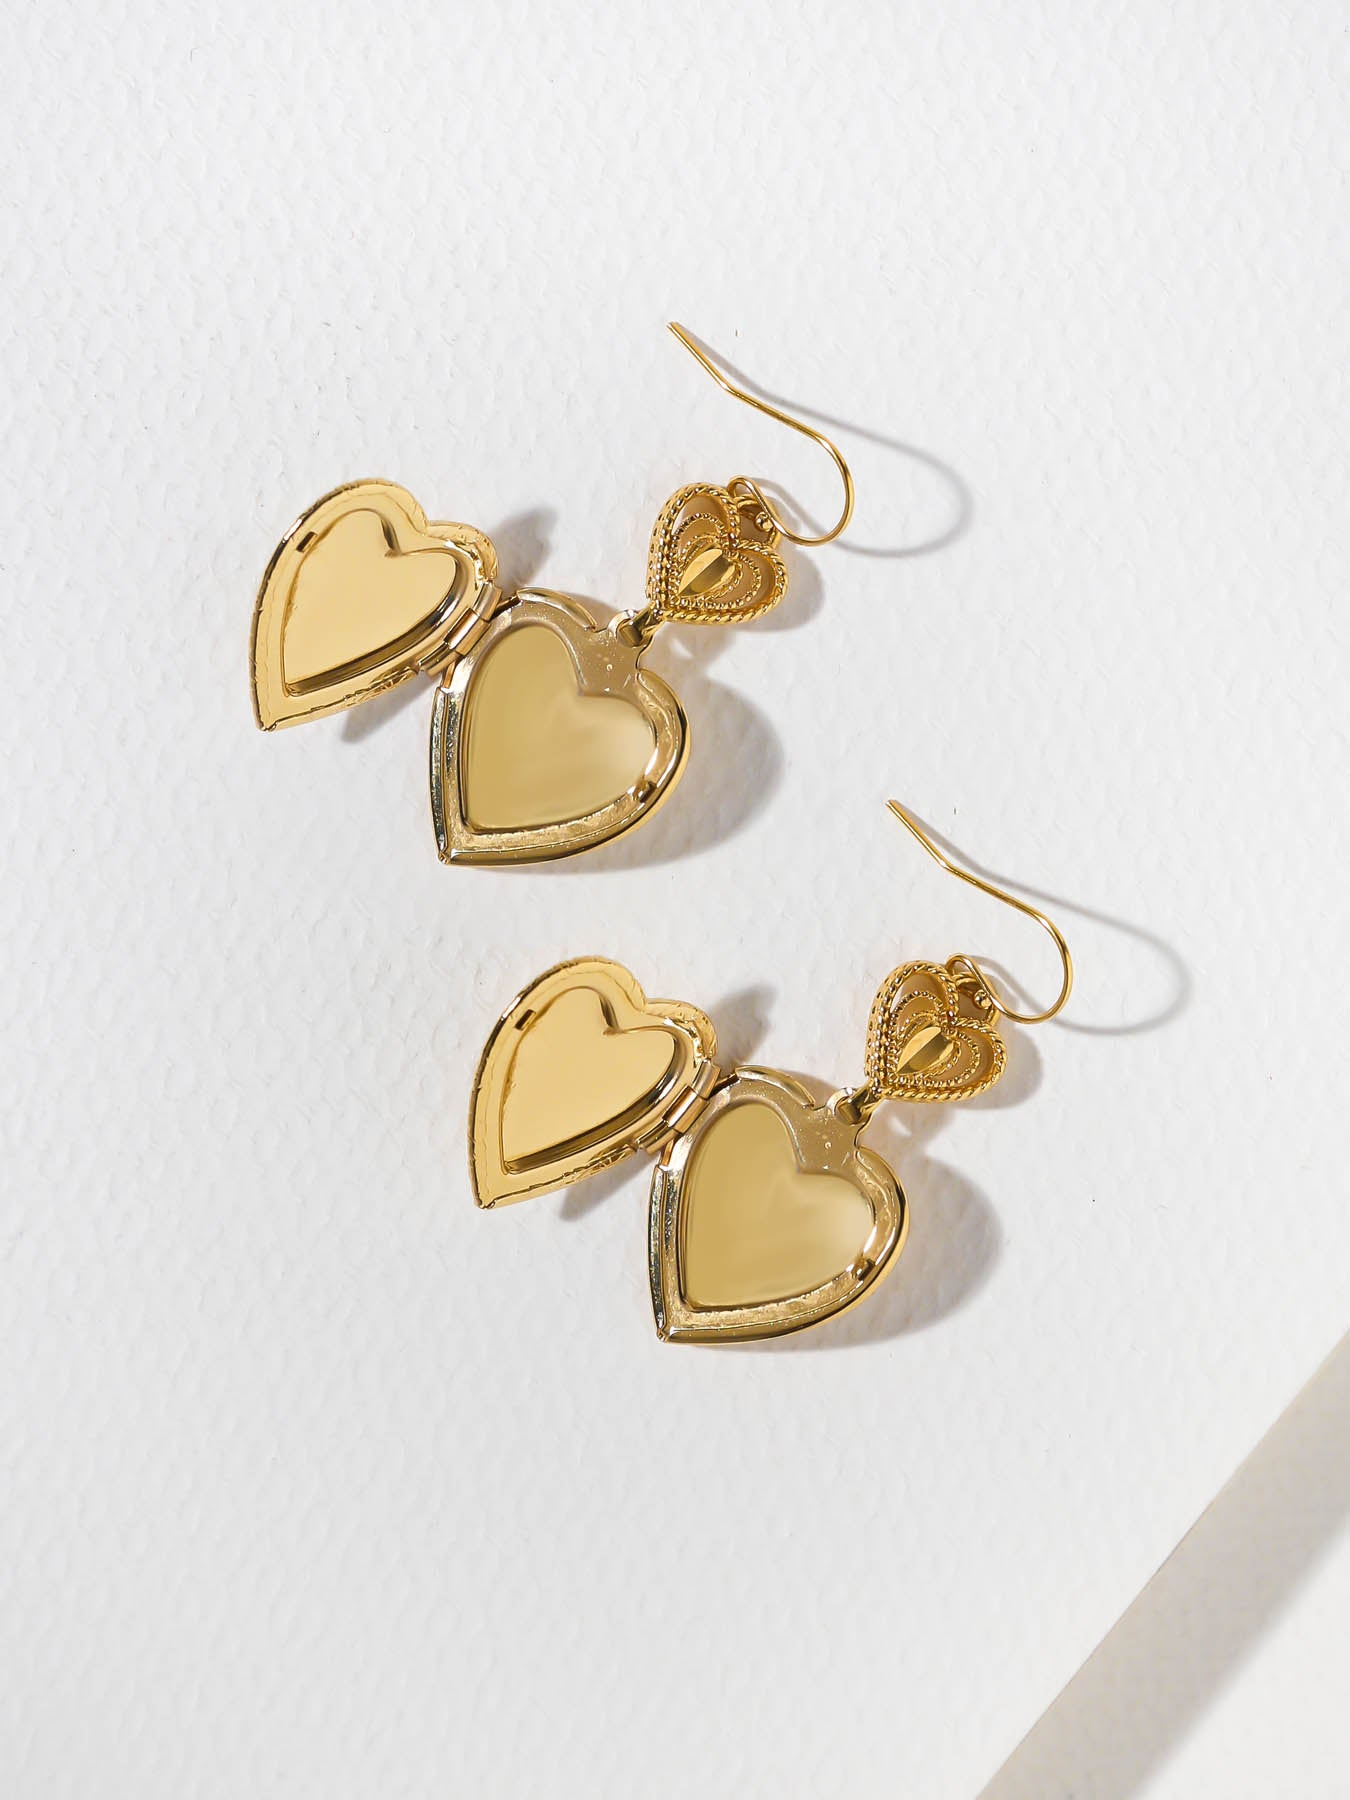 Earrings The Love Locked Earrings Vanessa Mooney